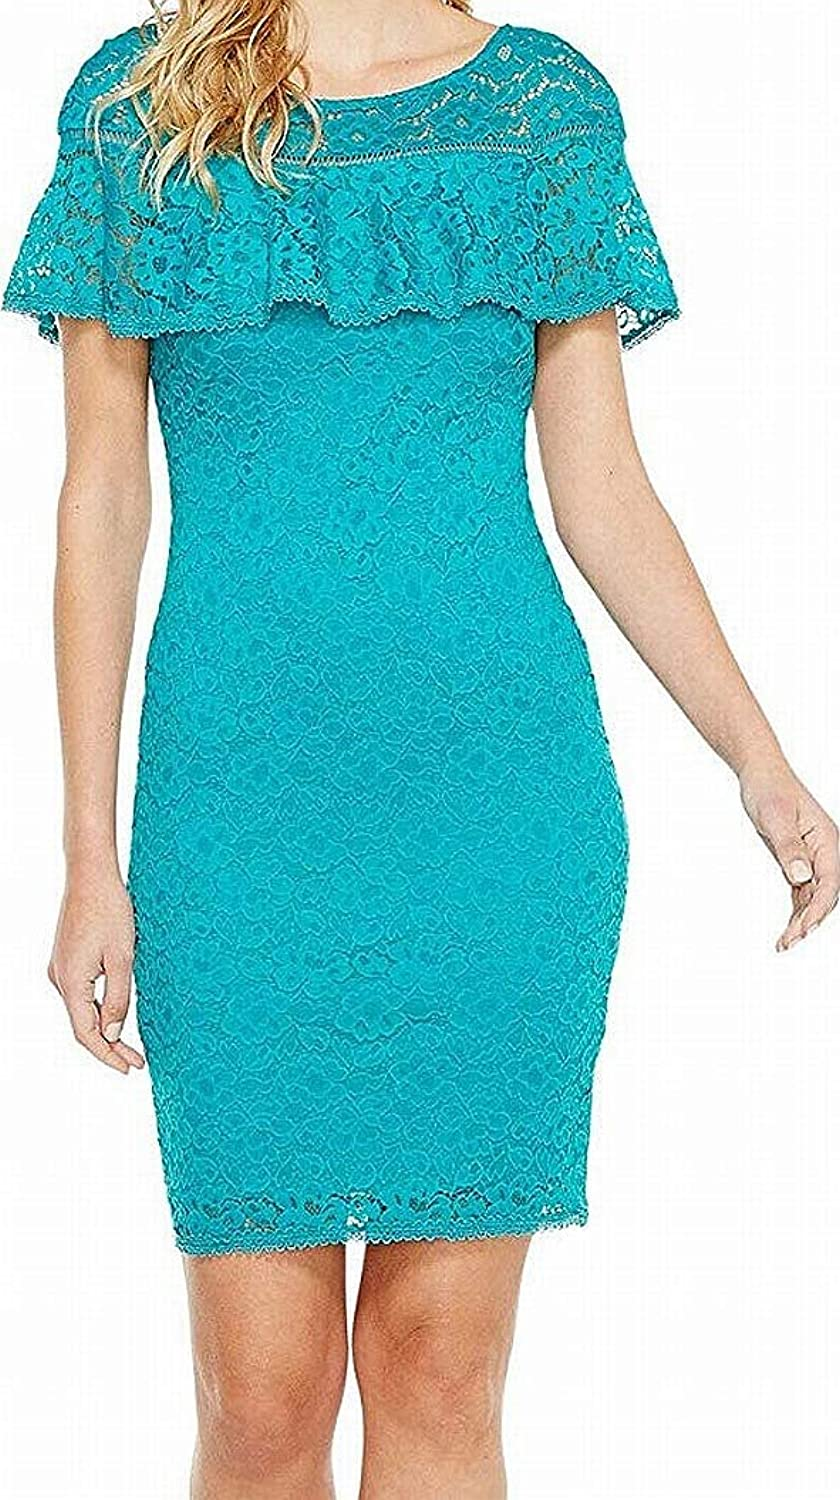 Laundry by Shelli Segal Womens Stretch Lace Dress